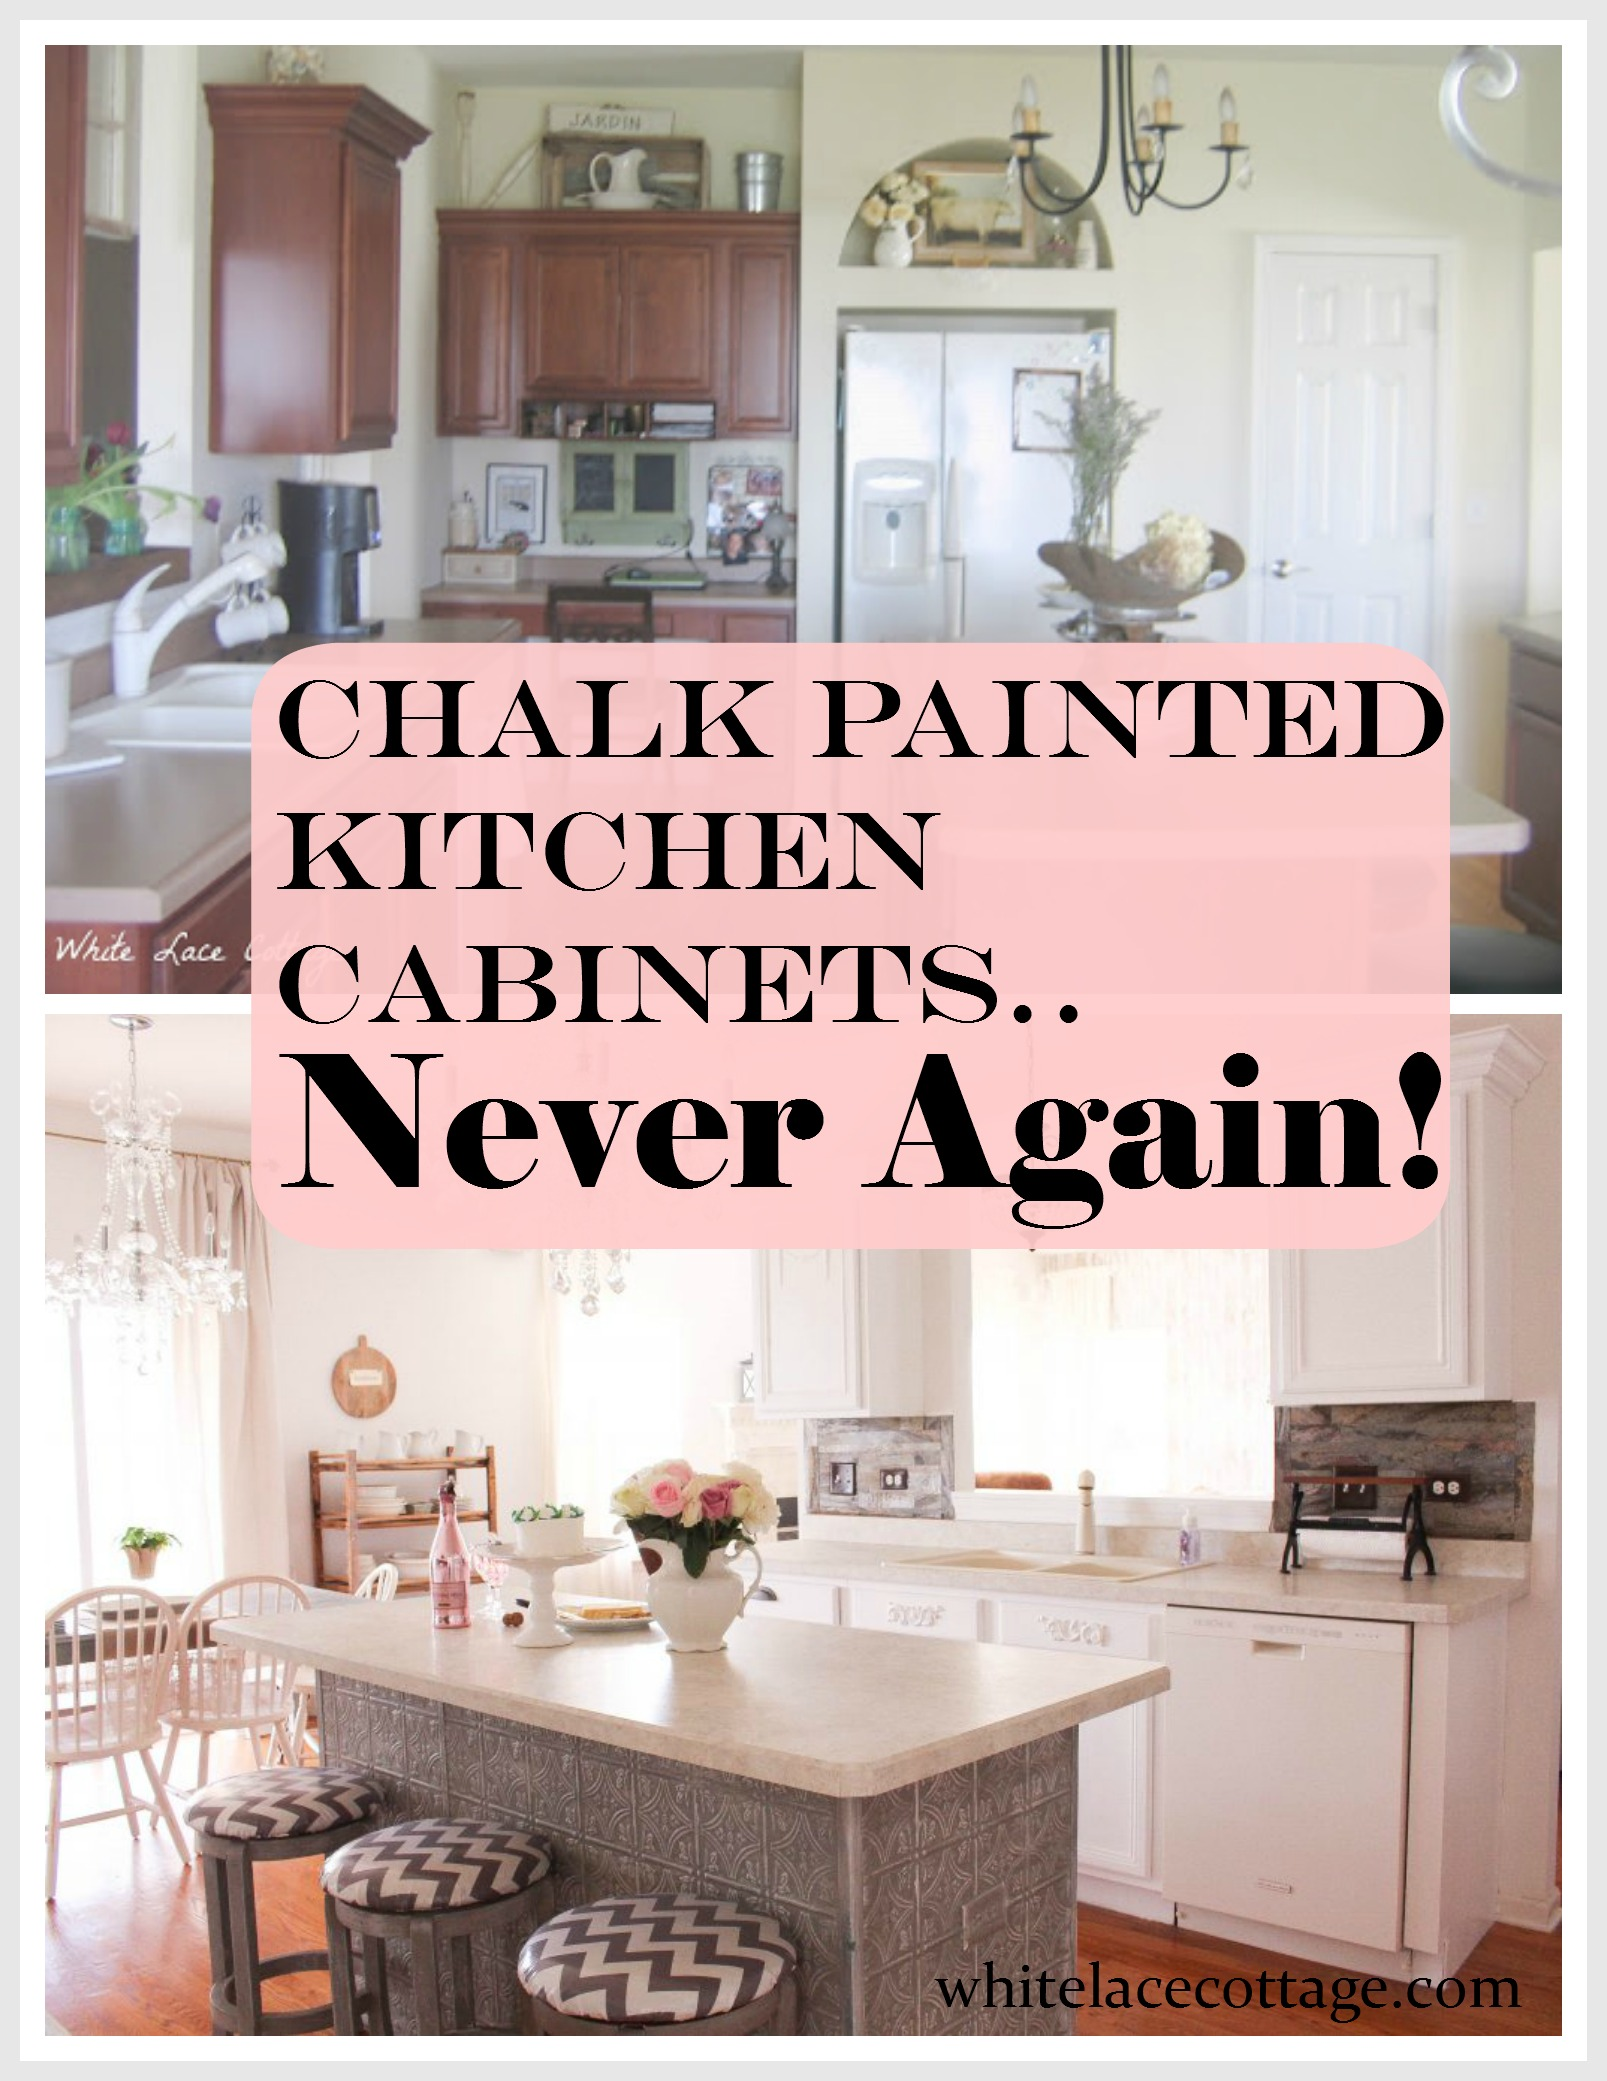 Chalk painted kitchen cabinets never again white lace - Can you paint the inside of kitchen cabinets ...